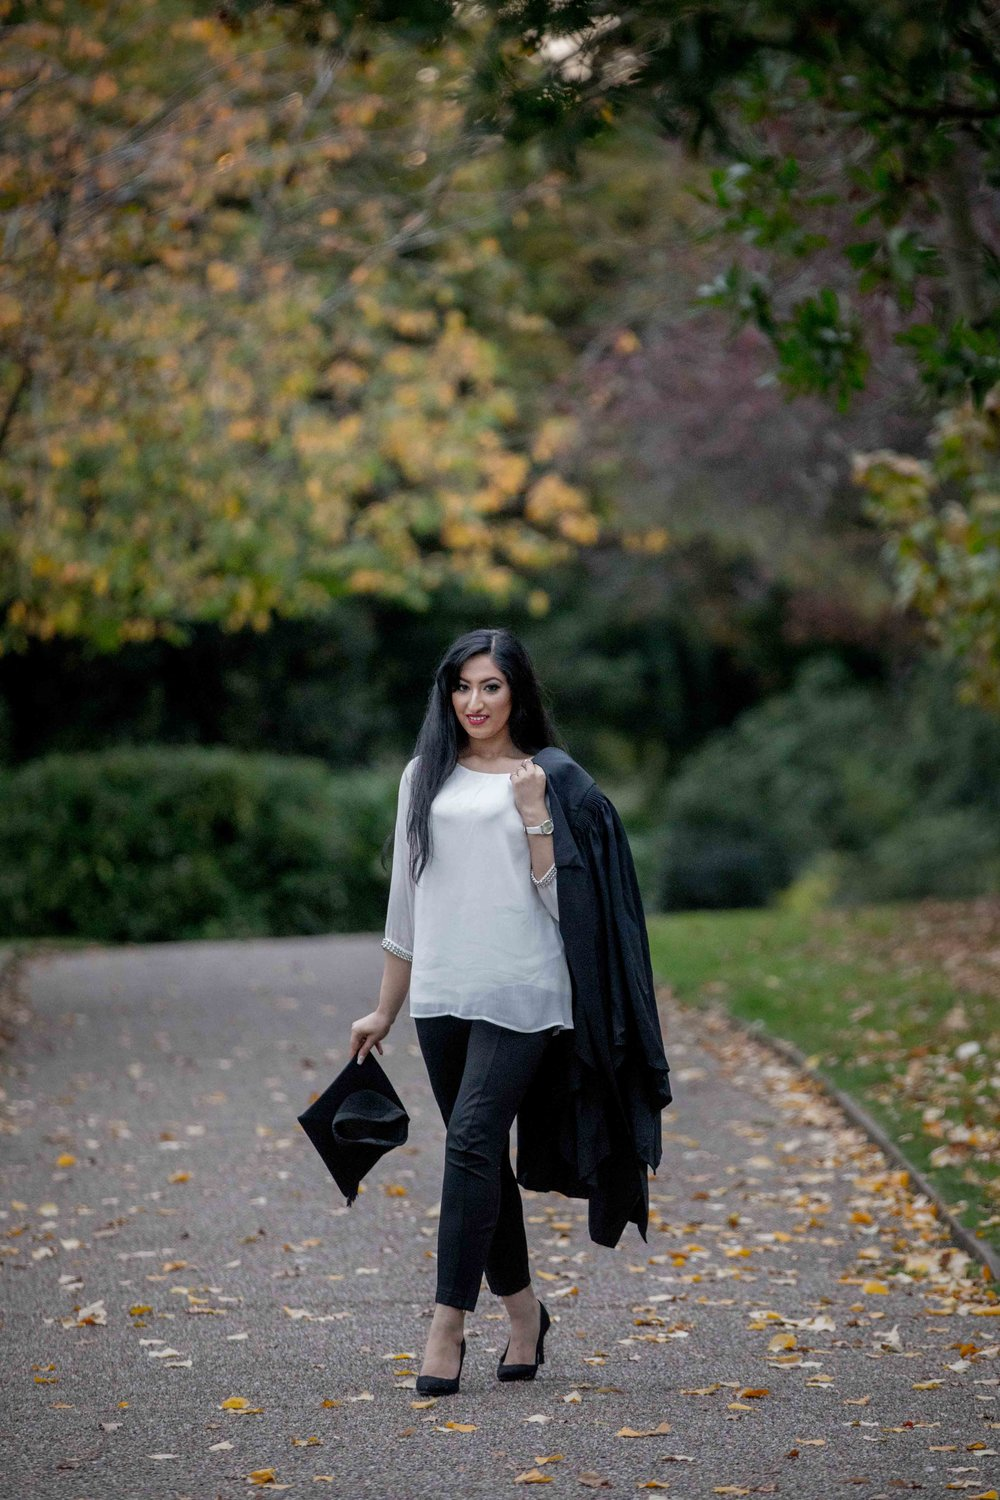 chester-university-graduation-ceremony-photography-photoshoot-graduation-photographer-Bristol-London-Cardiff-Birmingham-Chester-Natalia-smith-photography-21.jpg